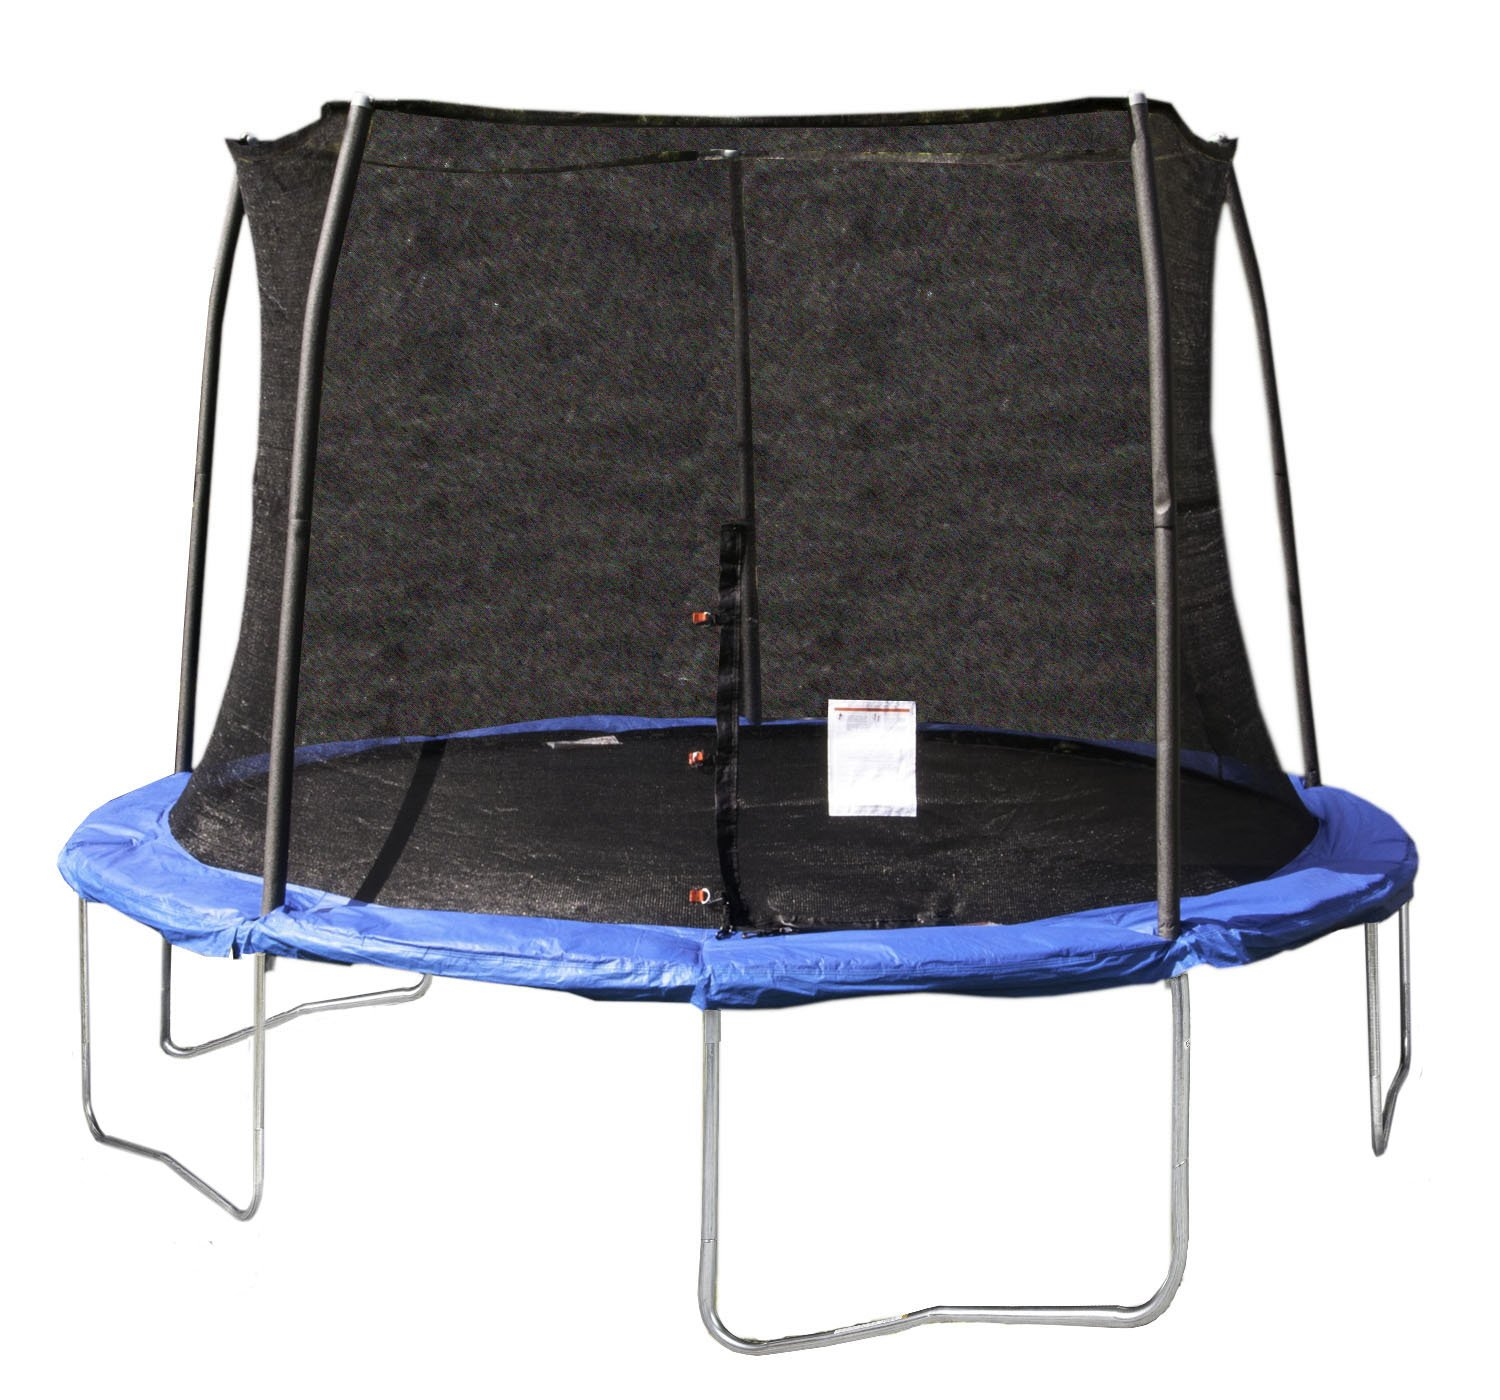 JumpKing 12 Foot Outdoor Trampoline and Safety Net Enclosure Combo, Blue JK12VC1 by JumpKing